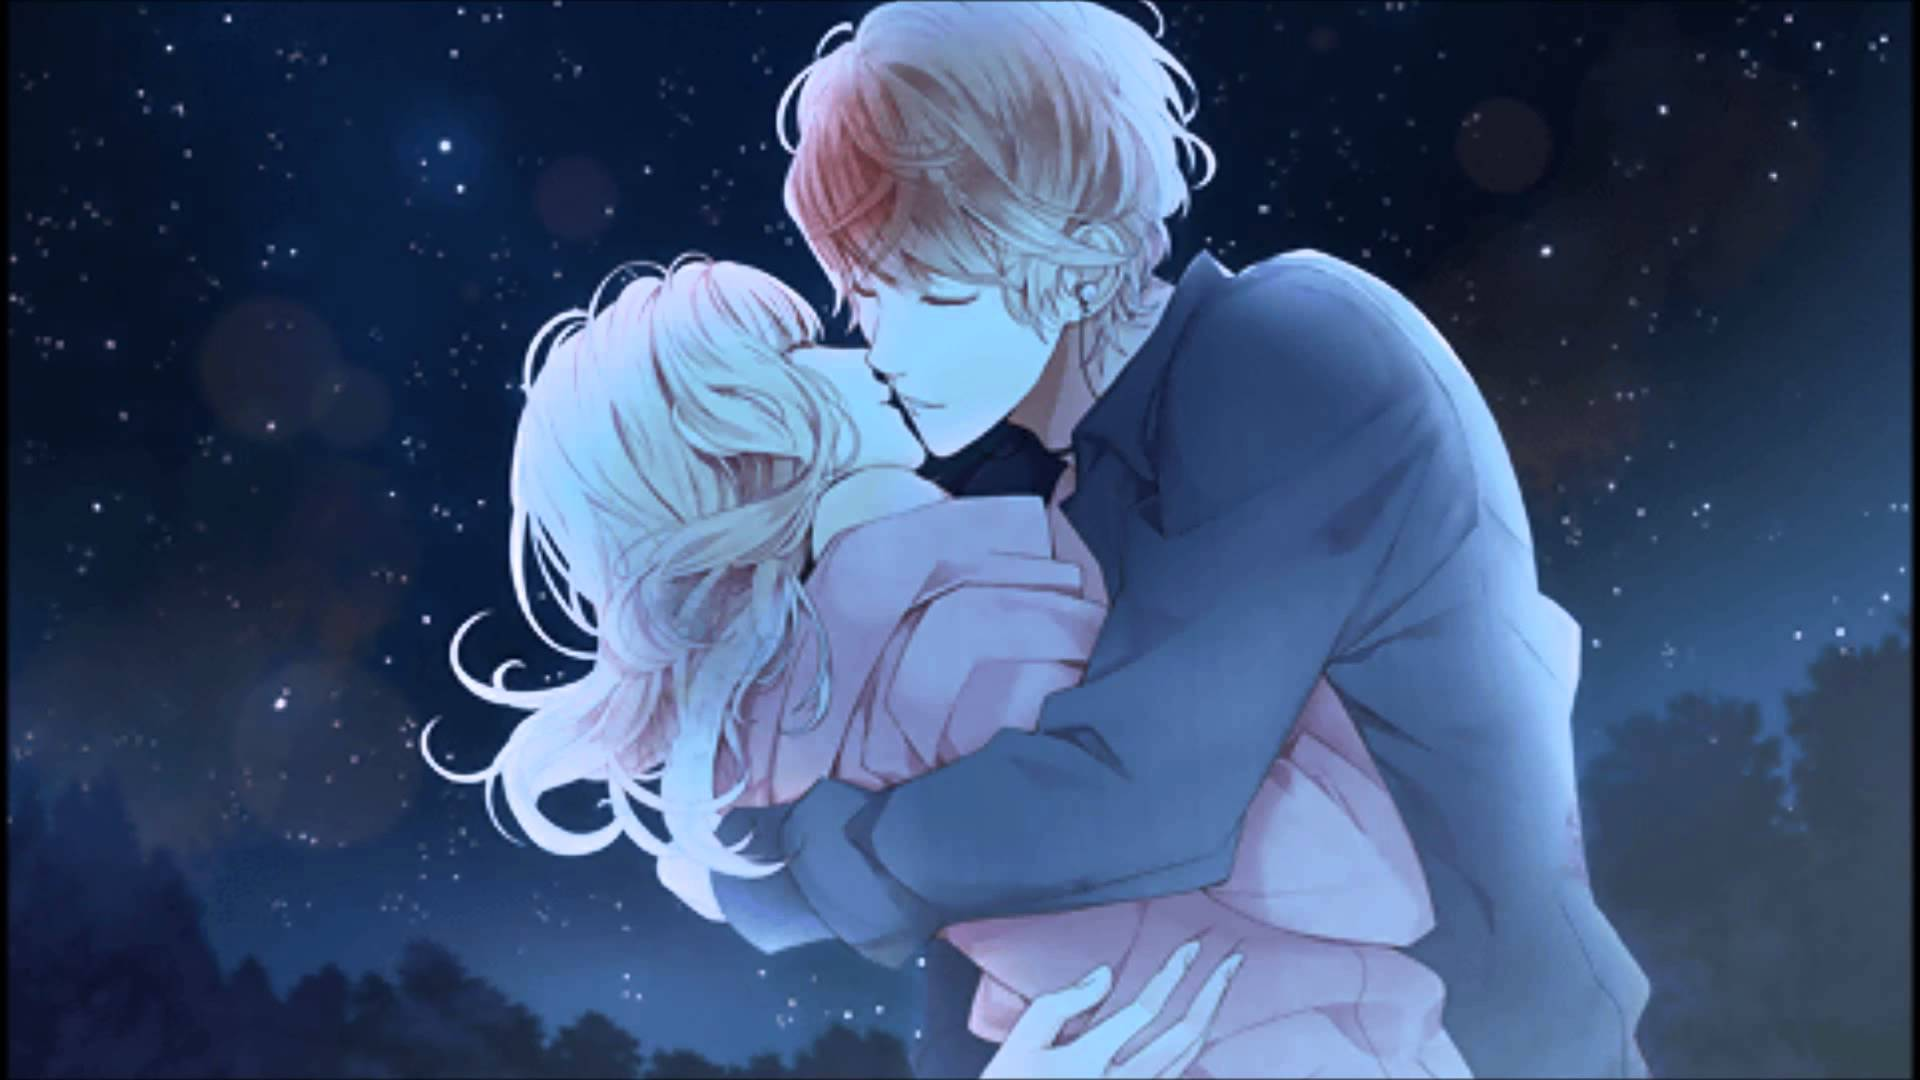 """""""Diabolik Lovers MORE, BLOOD Limited V Edition - 未 来 へ 向 こ う"""" — card from user Грелья Сатклифф in Yandex.Collections"""